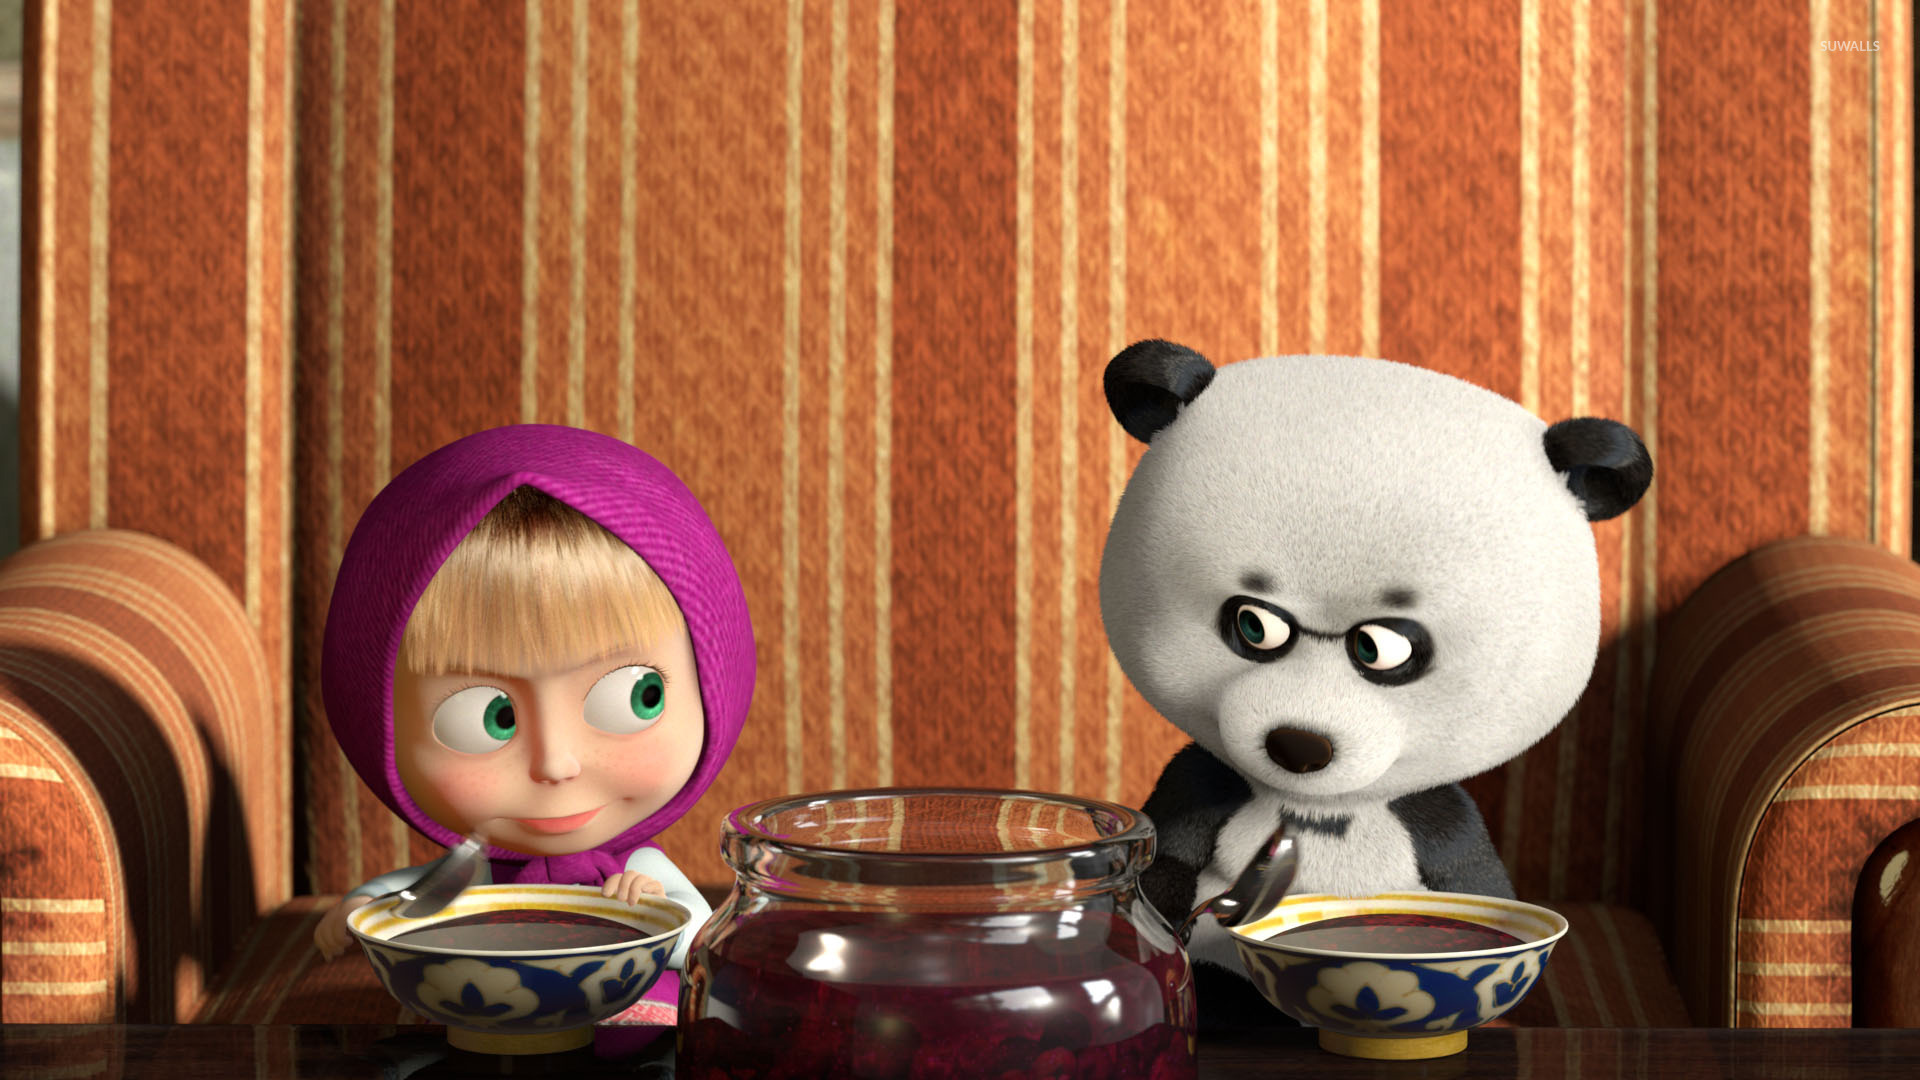 Masha And The Bear Wallpaper Tumblr